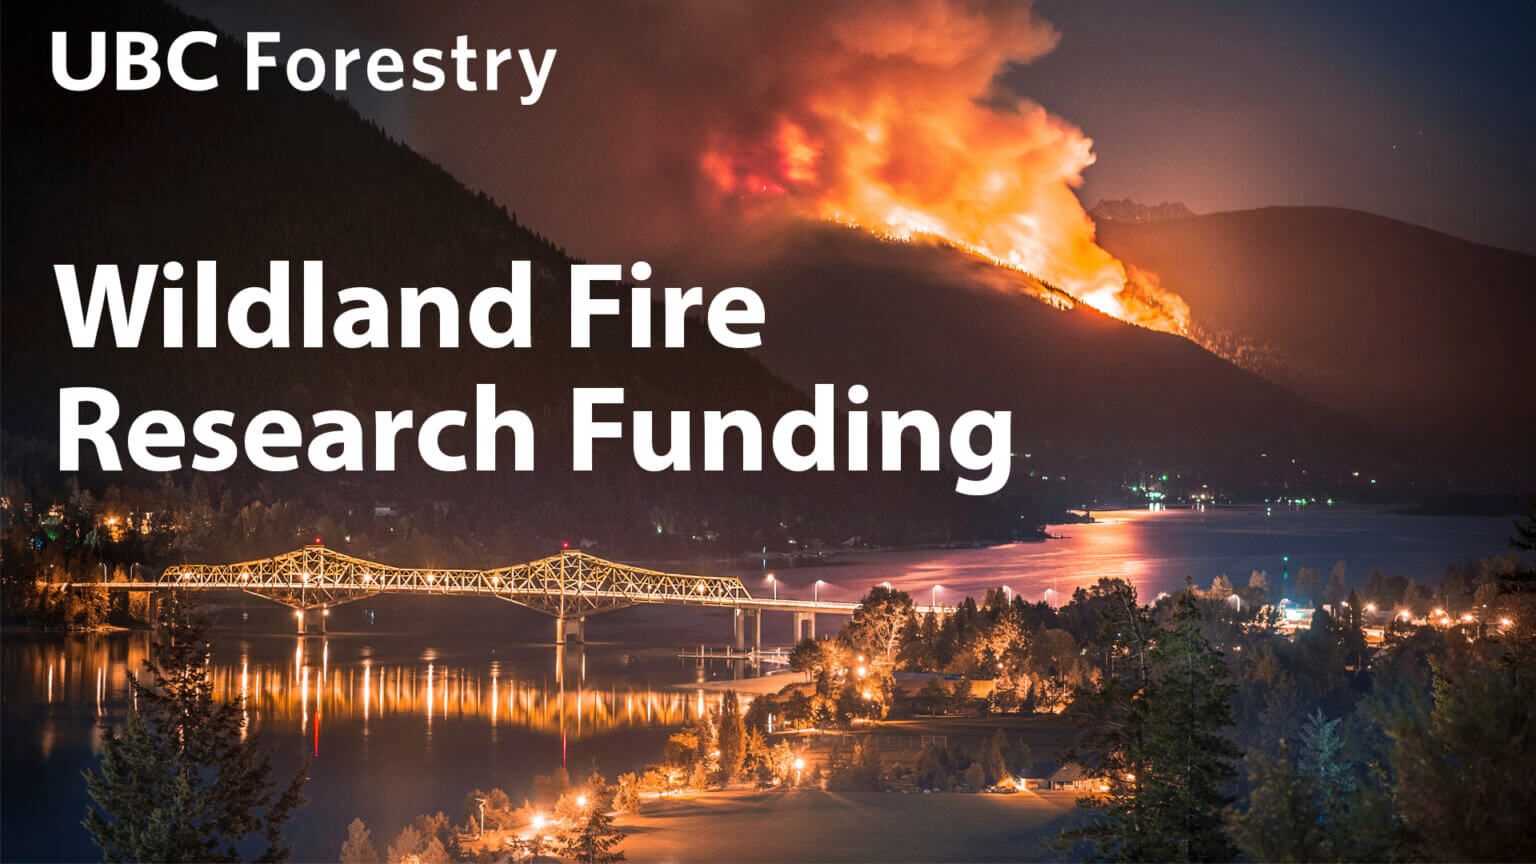 UBC Forestry Co-leading National Wildland Fire Research Network